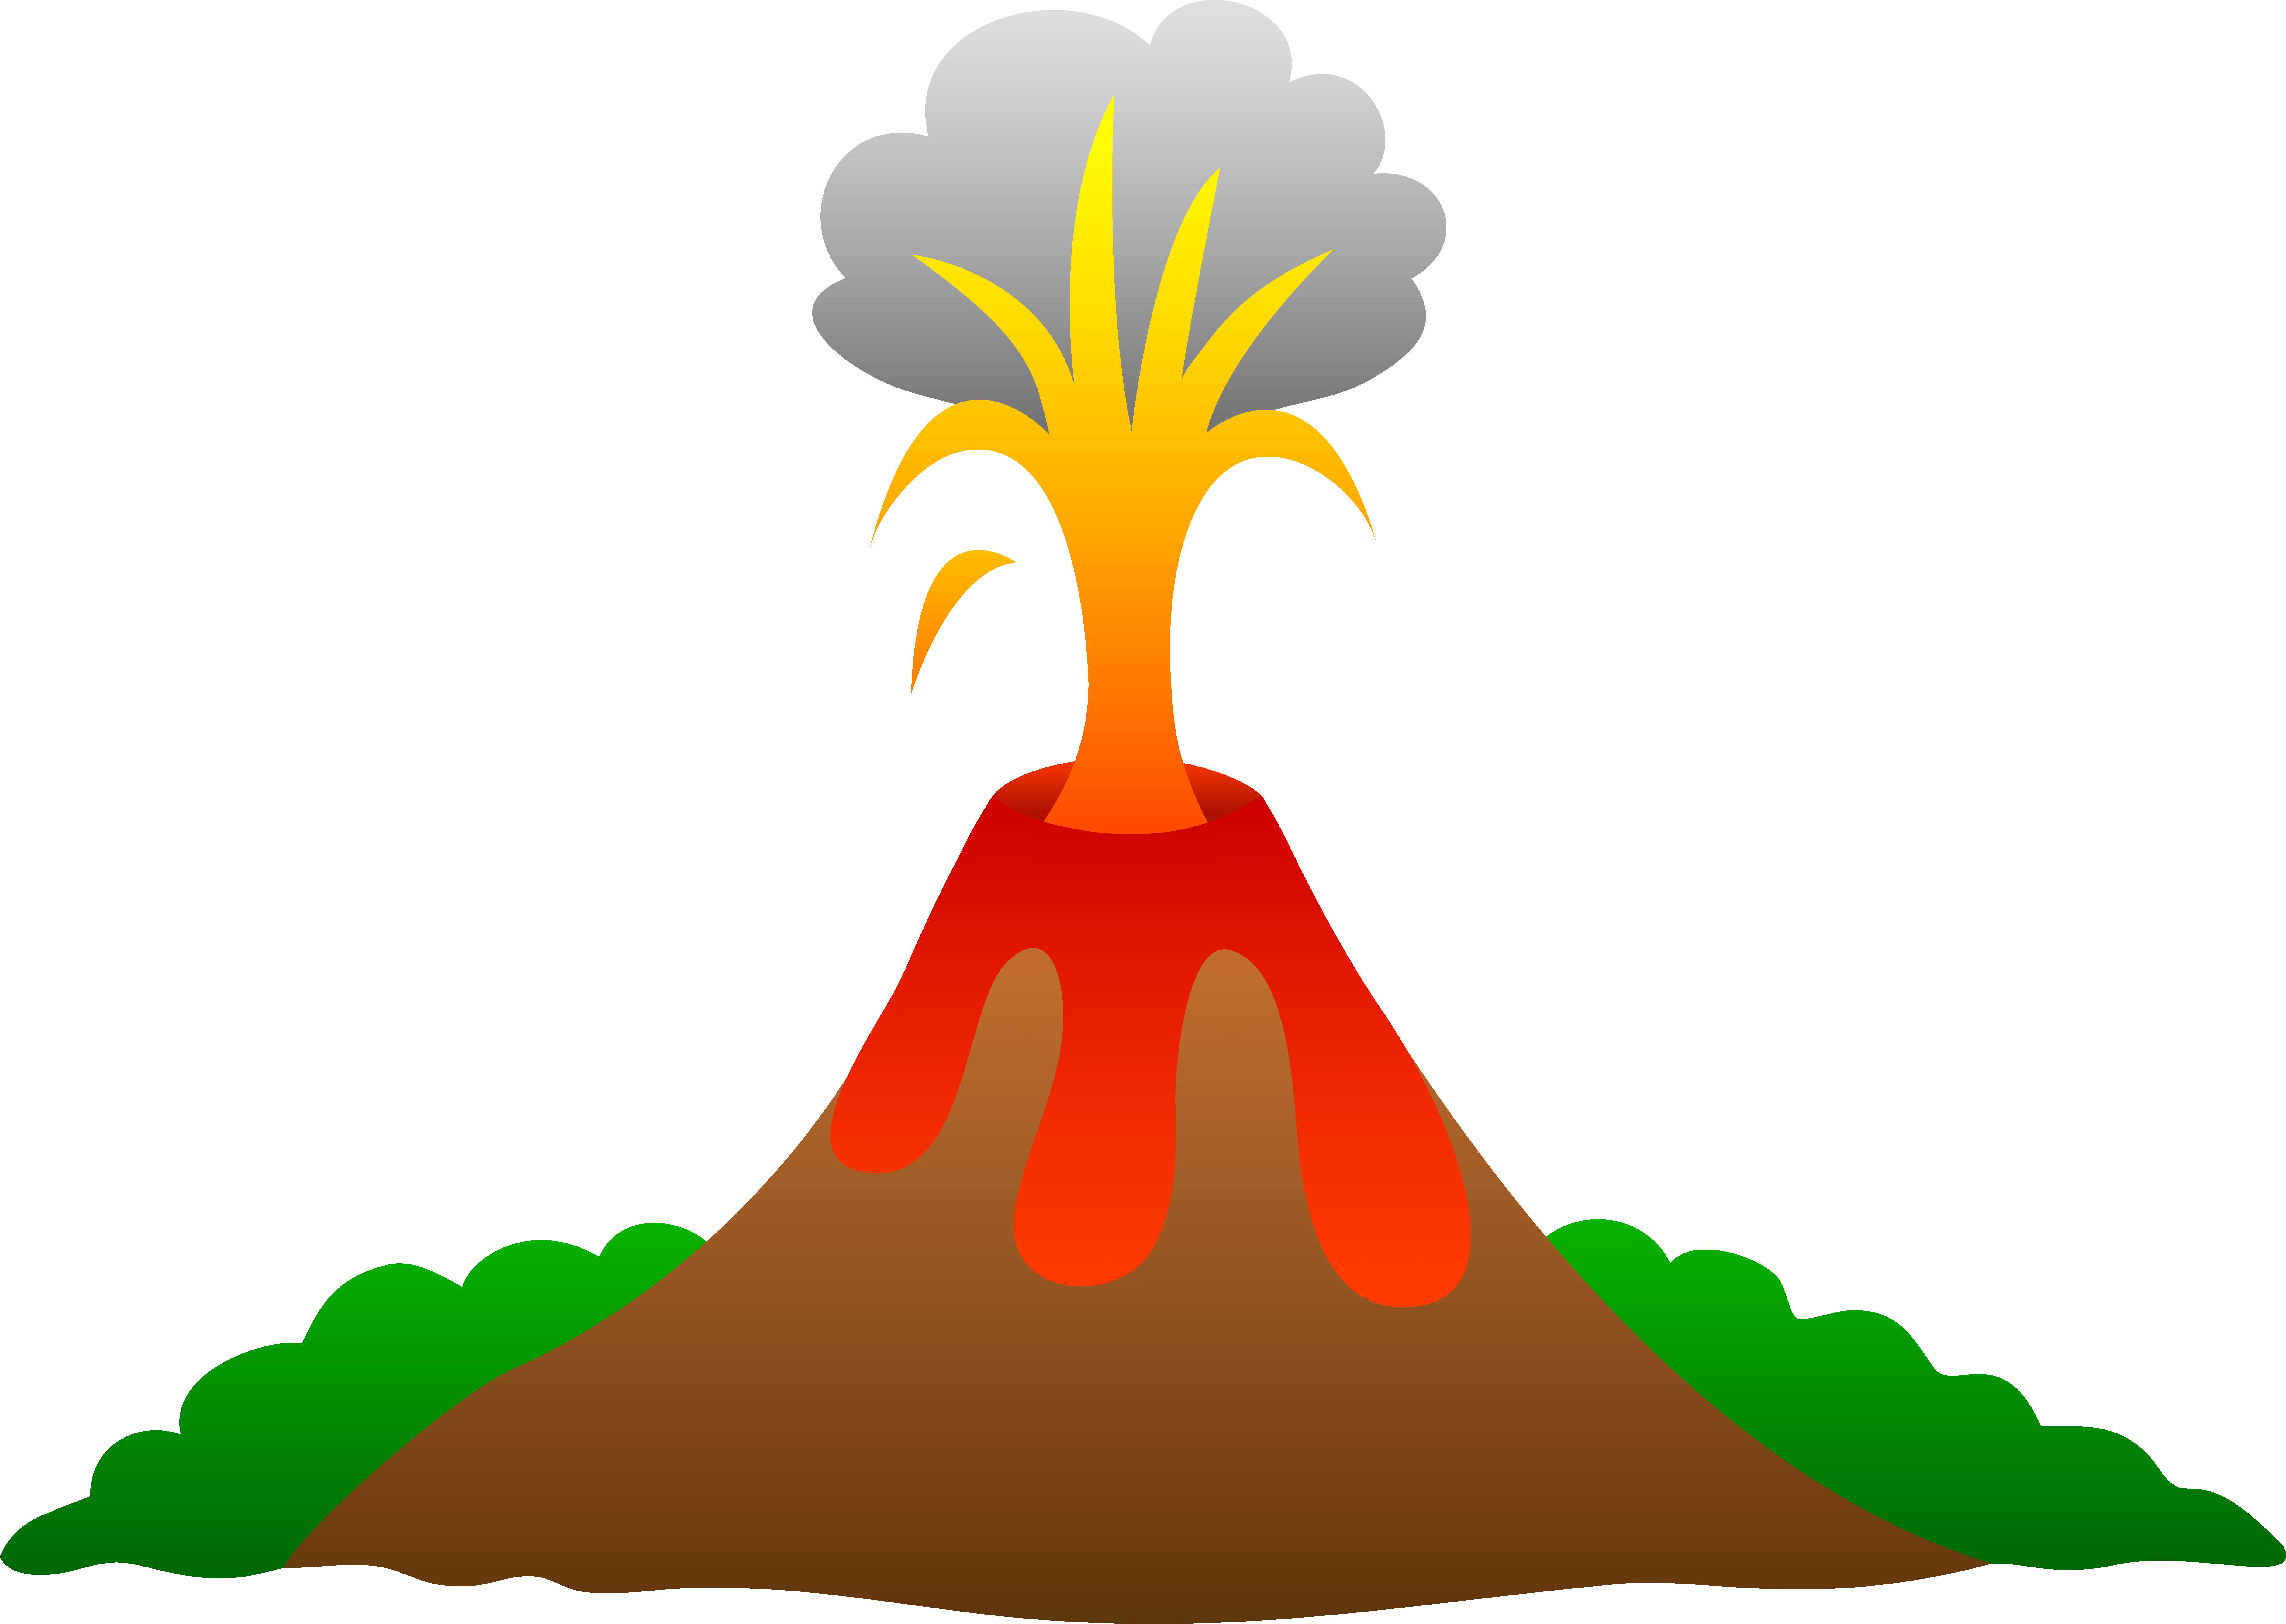 Volcanoes for kids facts. Words clipart fact